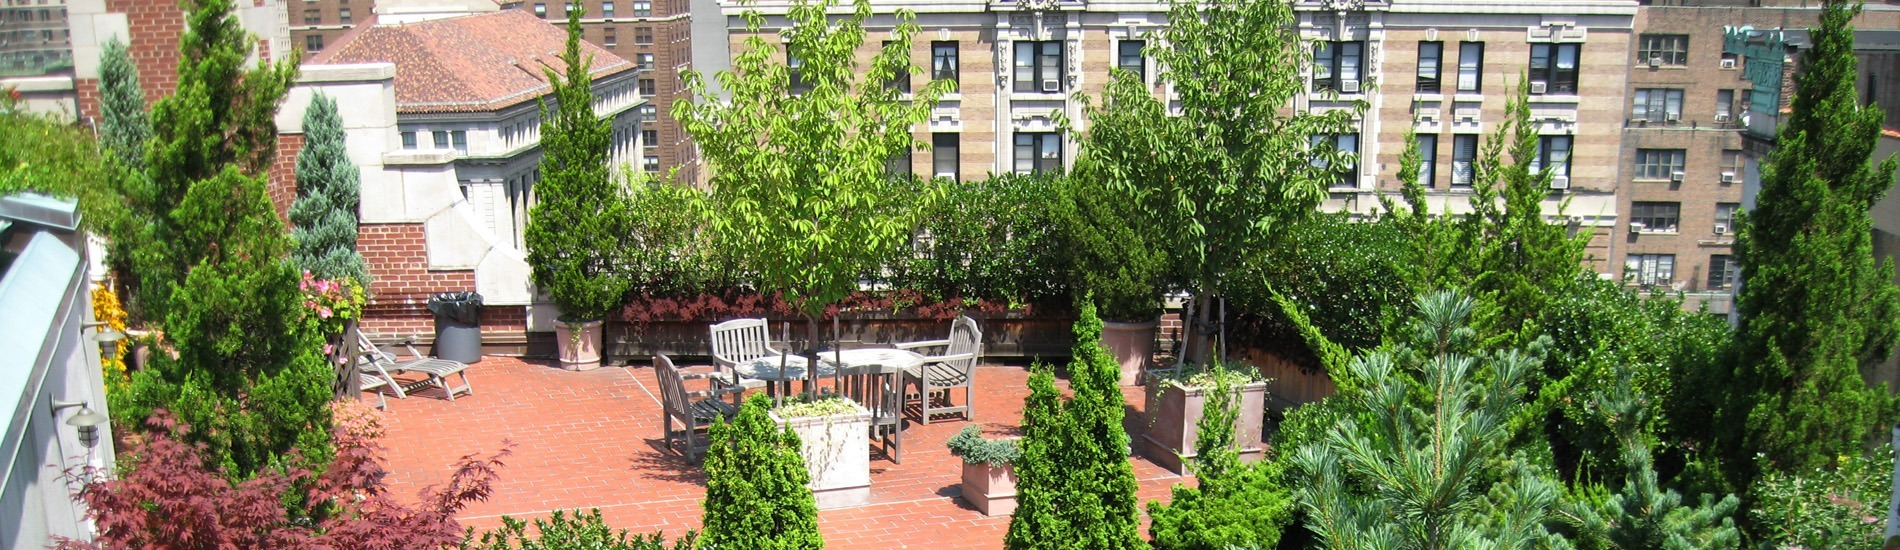 Common space garden on a rooftop in Manhattan